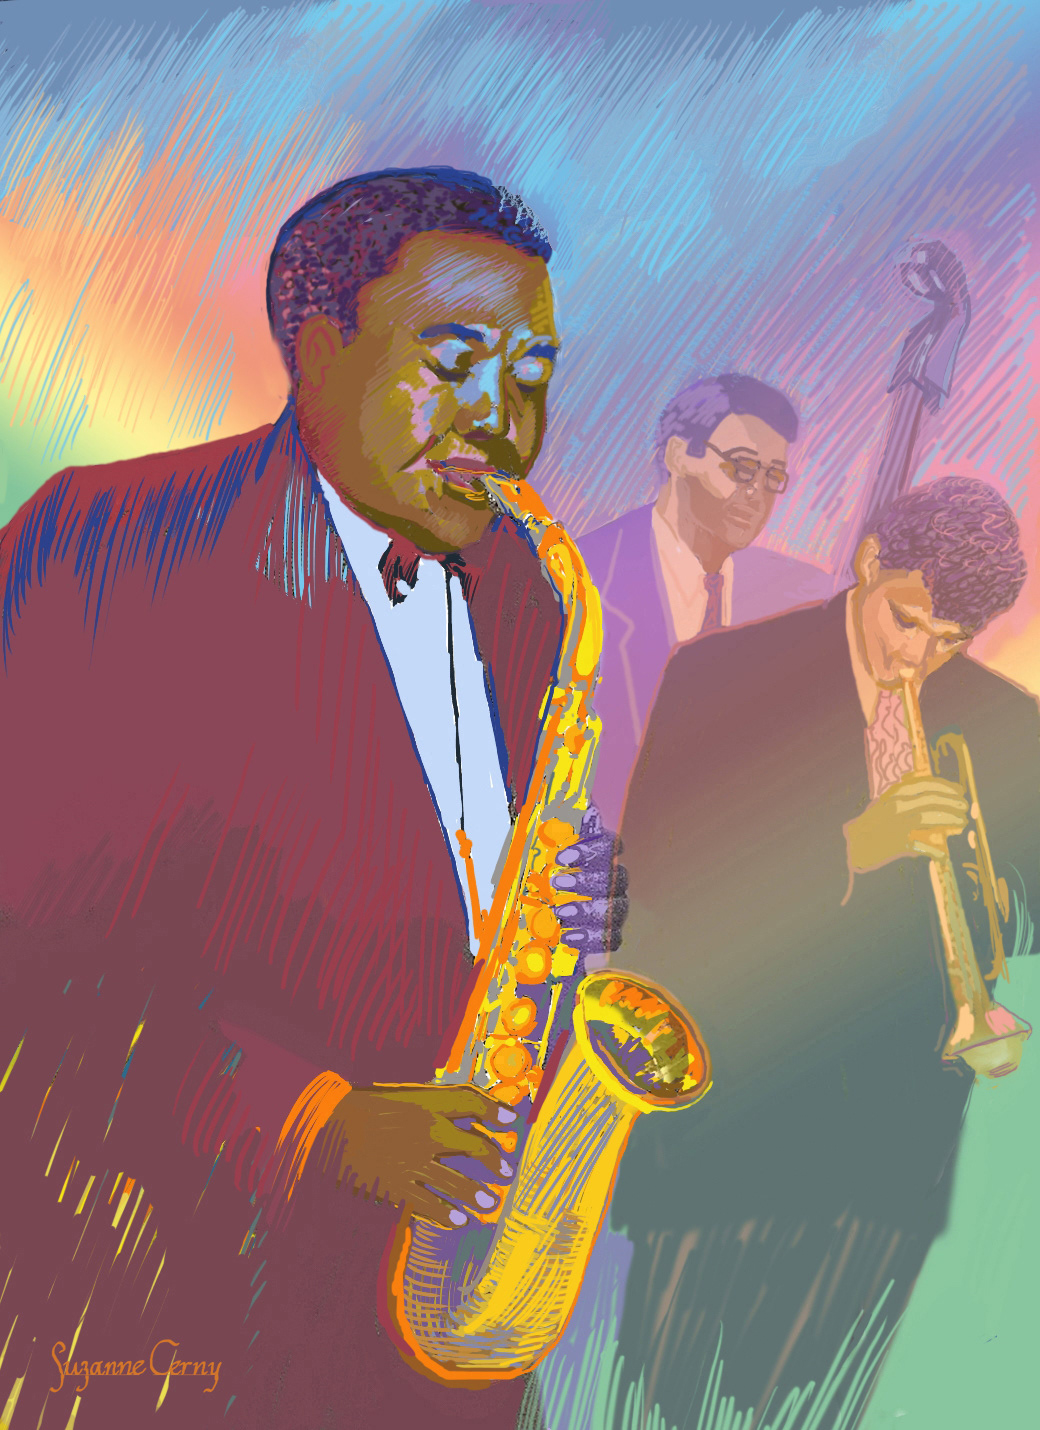 Jazz Art Images On Behance Exploded View Diagram Randal Birkey Illustration Nate Trumpet Style After Chet Baker At The Time This Was Painted Live In Performance Santa Barbara Ca Signed By All Players